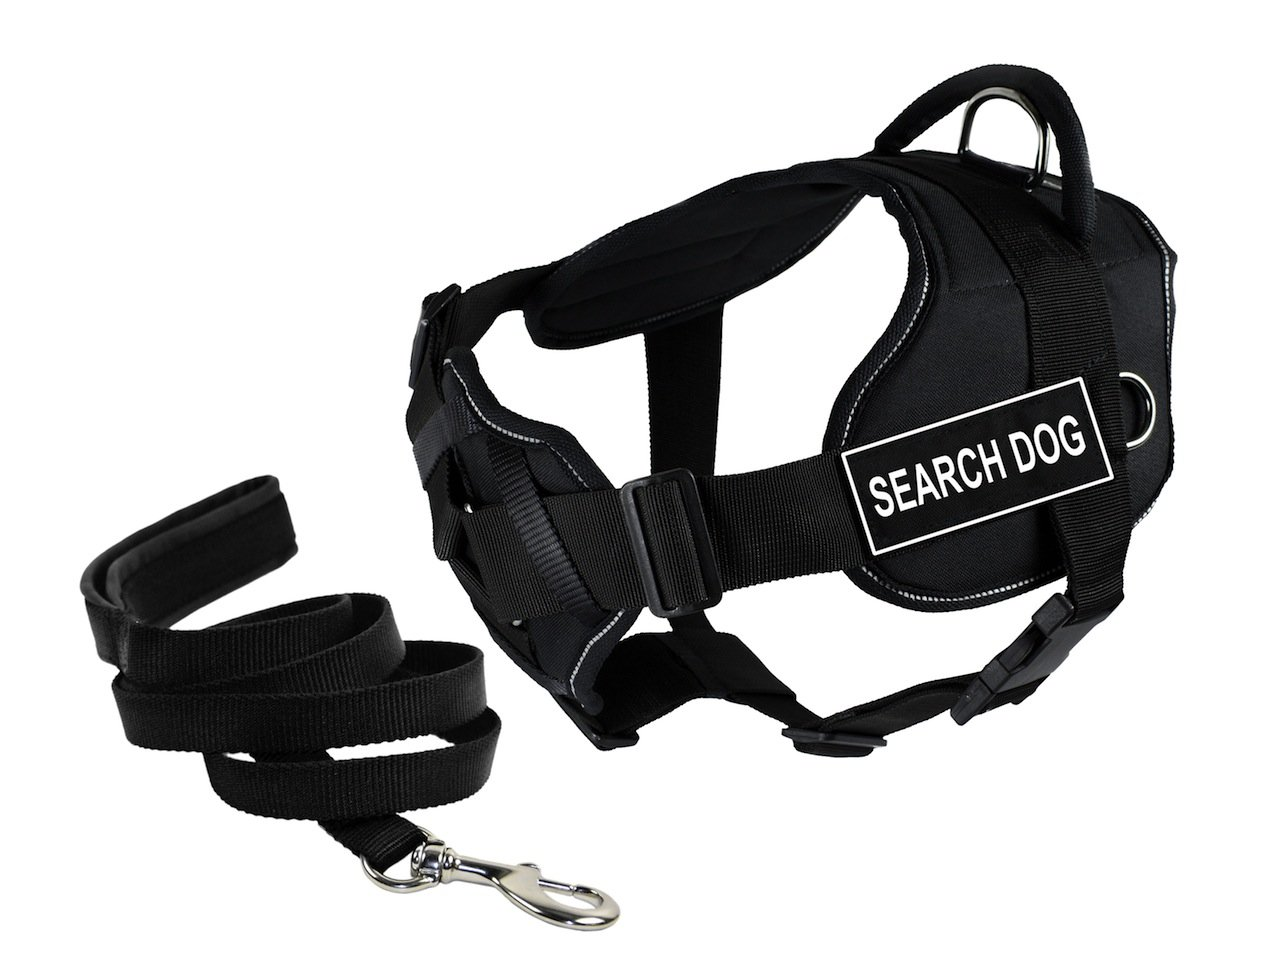 Dean & Tyler's DT Fun Chest Support ''SEARCH DOG '' Harness with Reflective Trim, Large, and 6 ft Padded Puppy Leash.